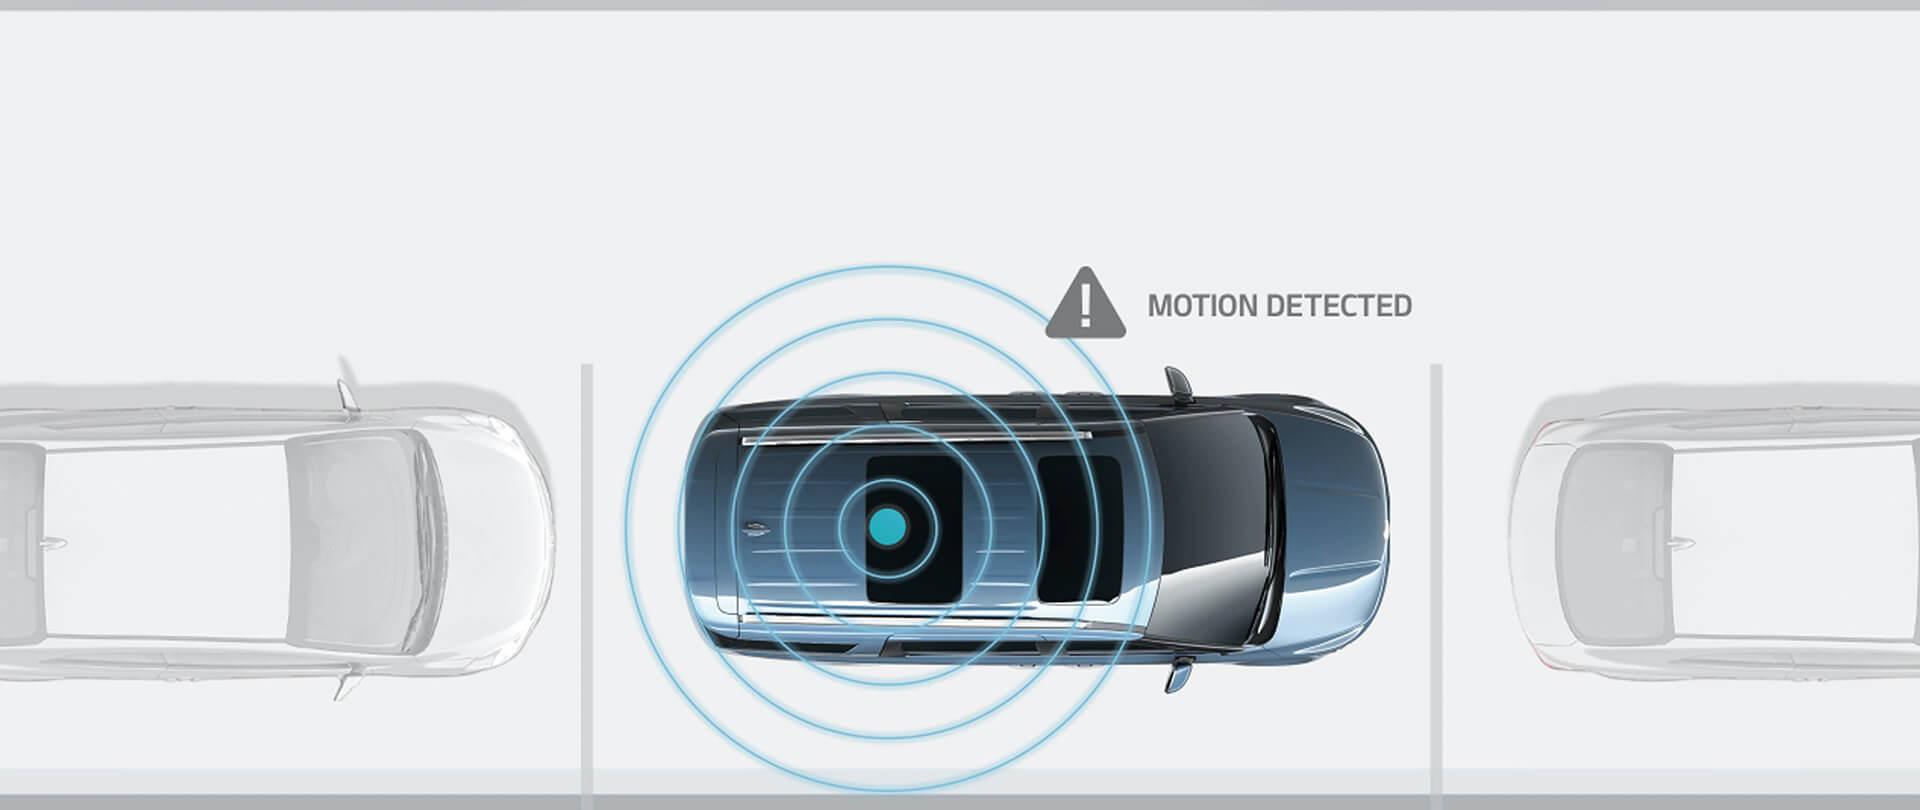 Rear Occupant Alert with Ultrasonic Sensors